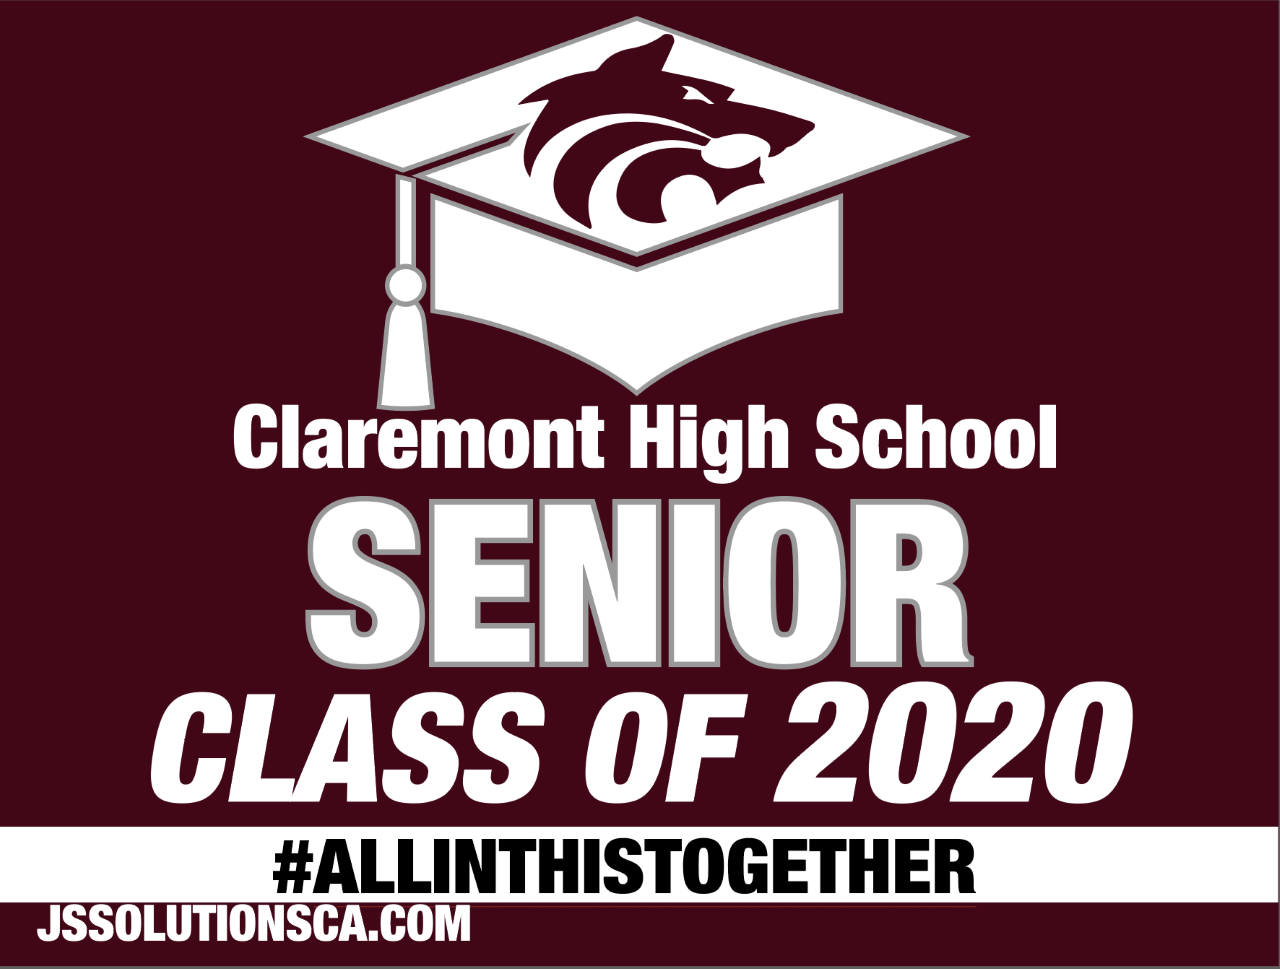 class of 2020 all in this together